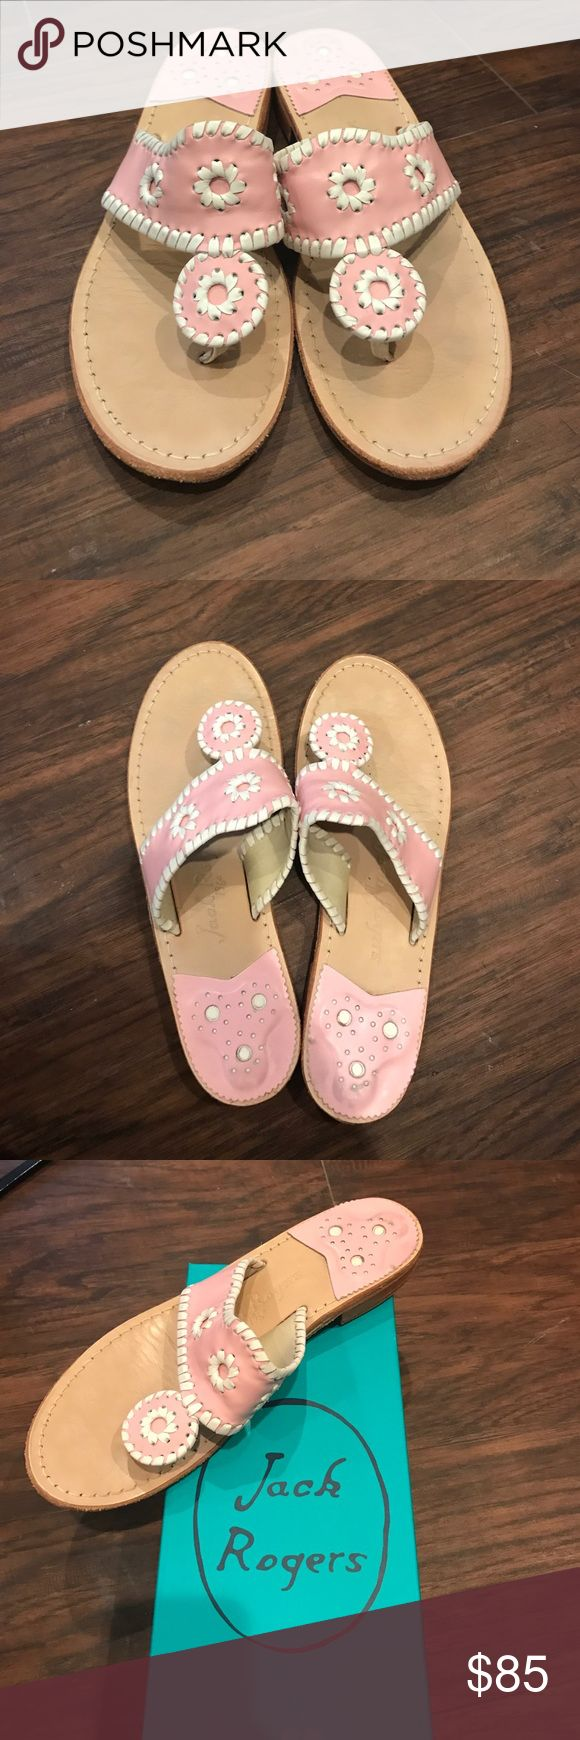 Pink Jack Rogers Palm Beach Sandal Pink and white Jack Rogers palm beach sandal. Barely worn, great condition! Size 8, comes with original box. Jack Rogers Shoes Sandals